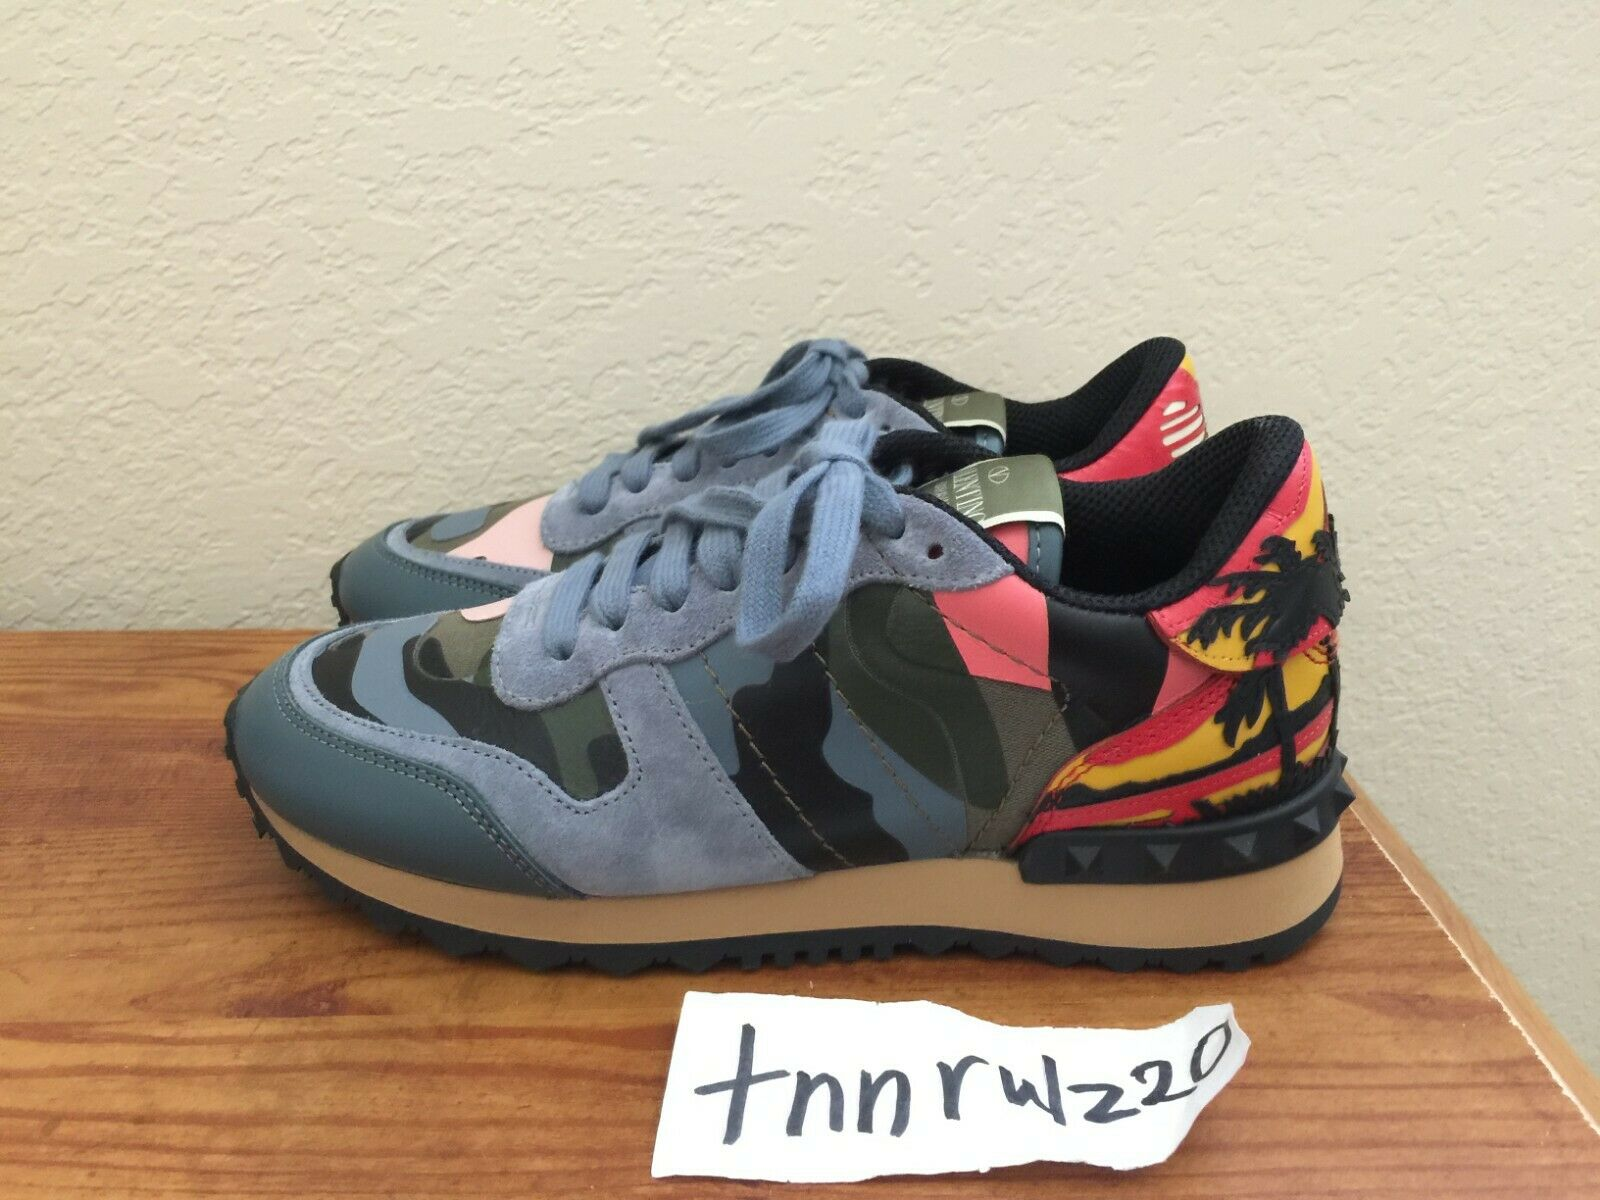 New Authentic bluee bluee bluee Camo VALENTINO GARAVANI Rockstud Roadrunner Sneakers 6 6.5 bfa381